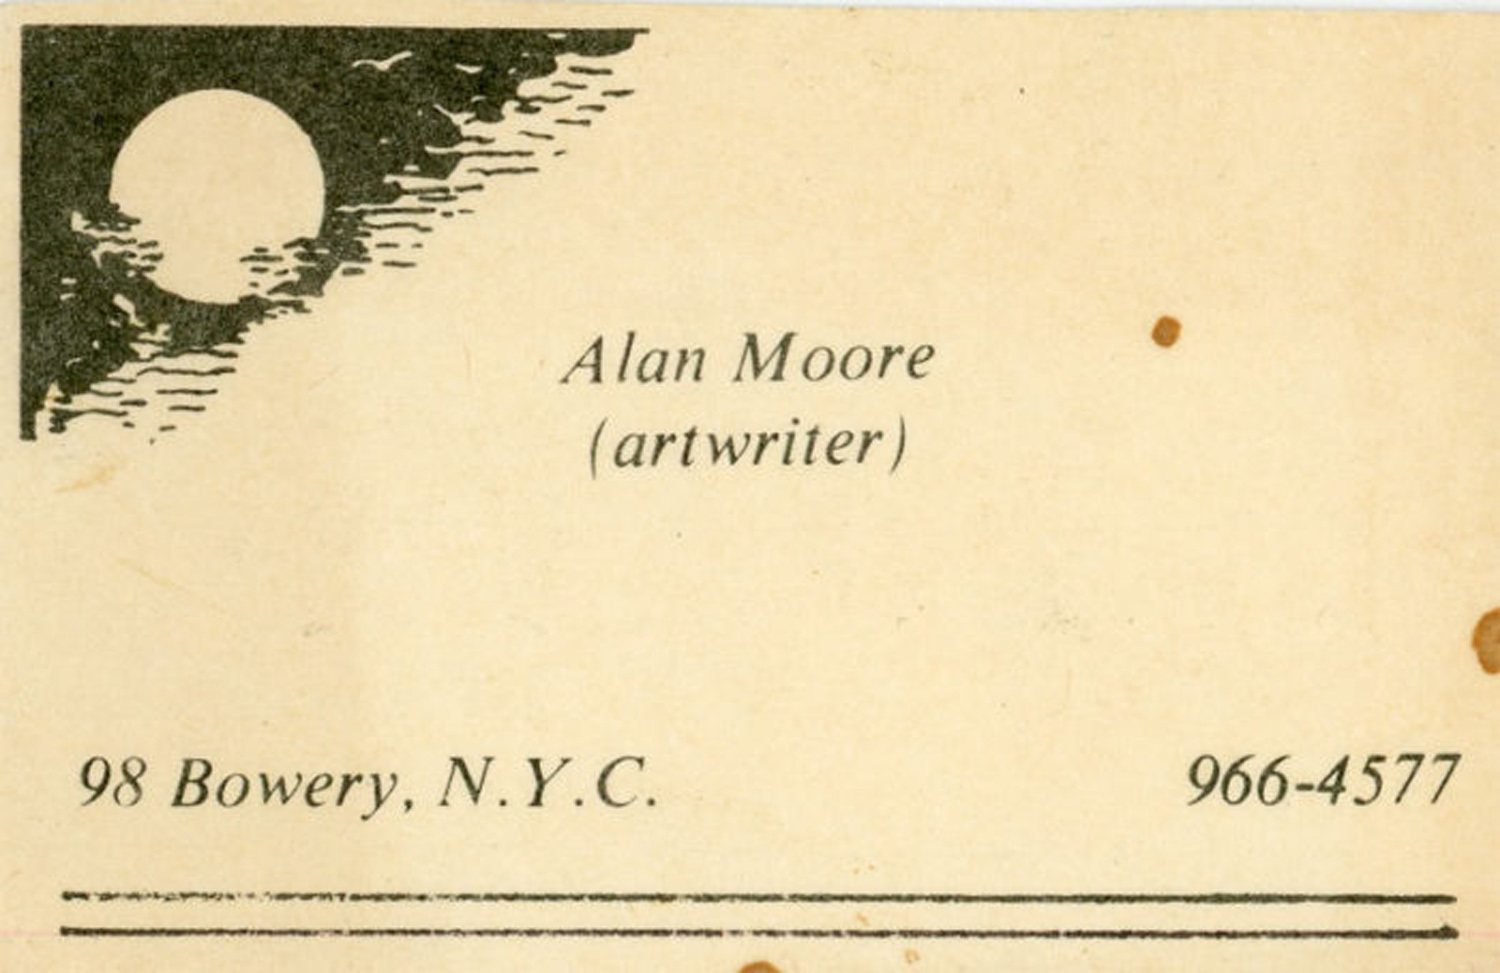 Alan Moore, Business Card, c. 1975.